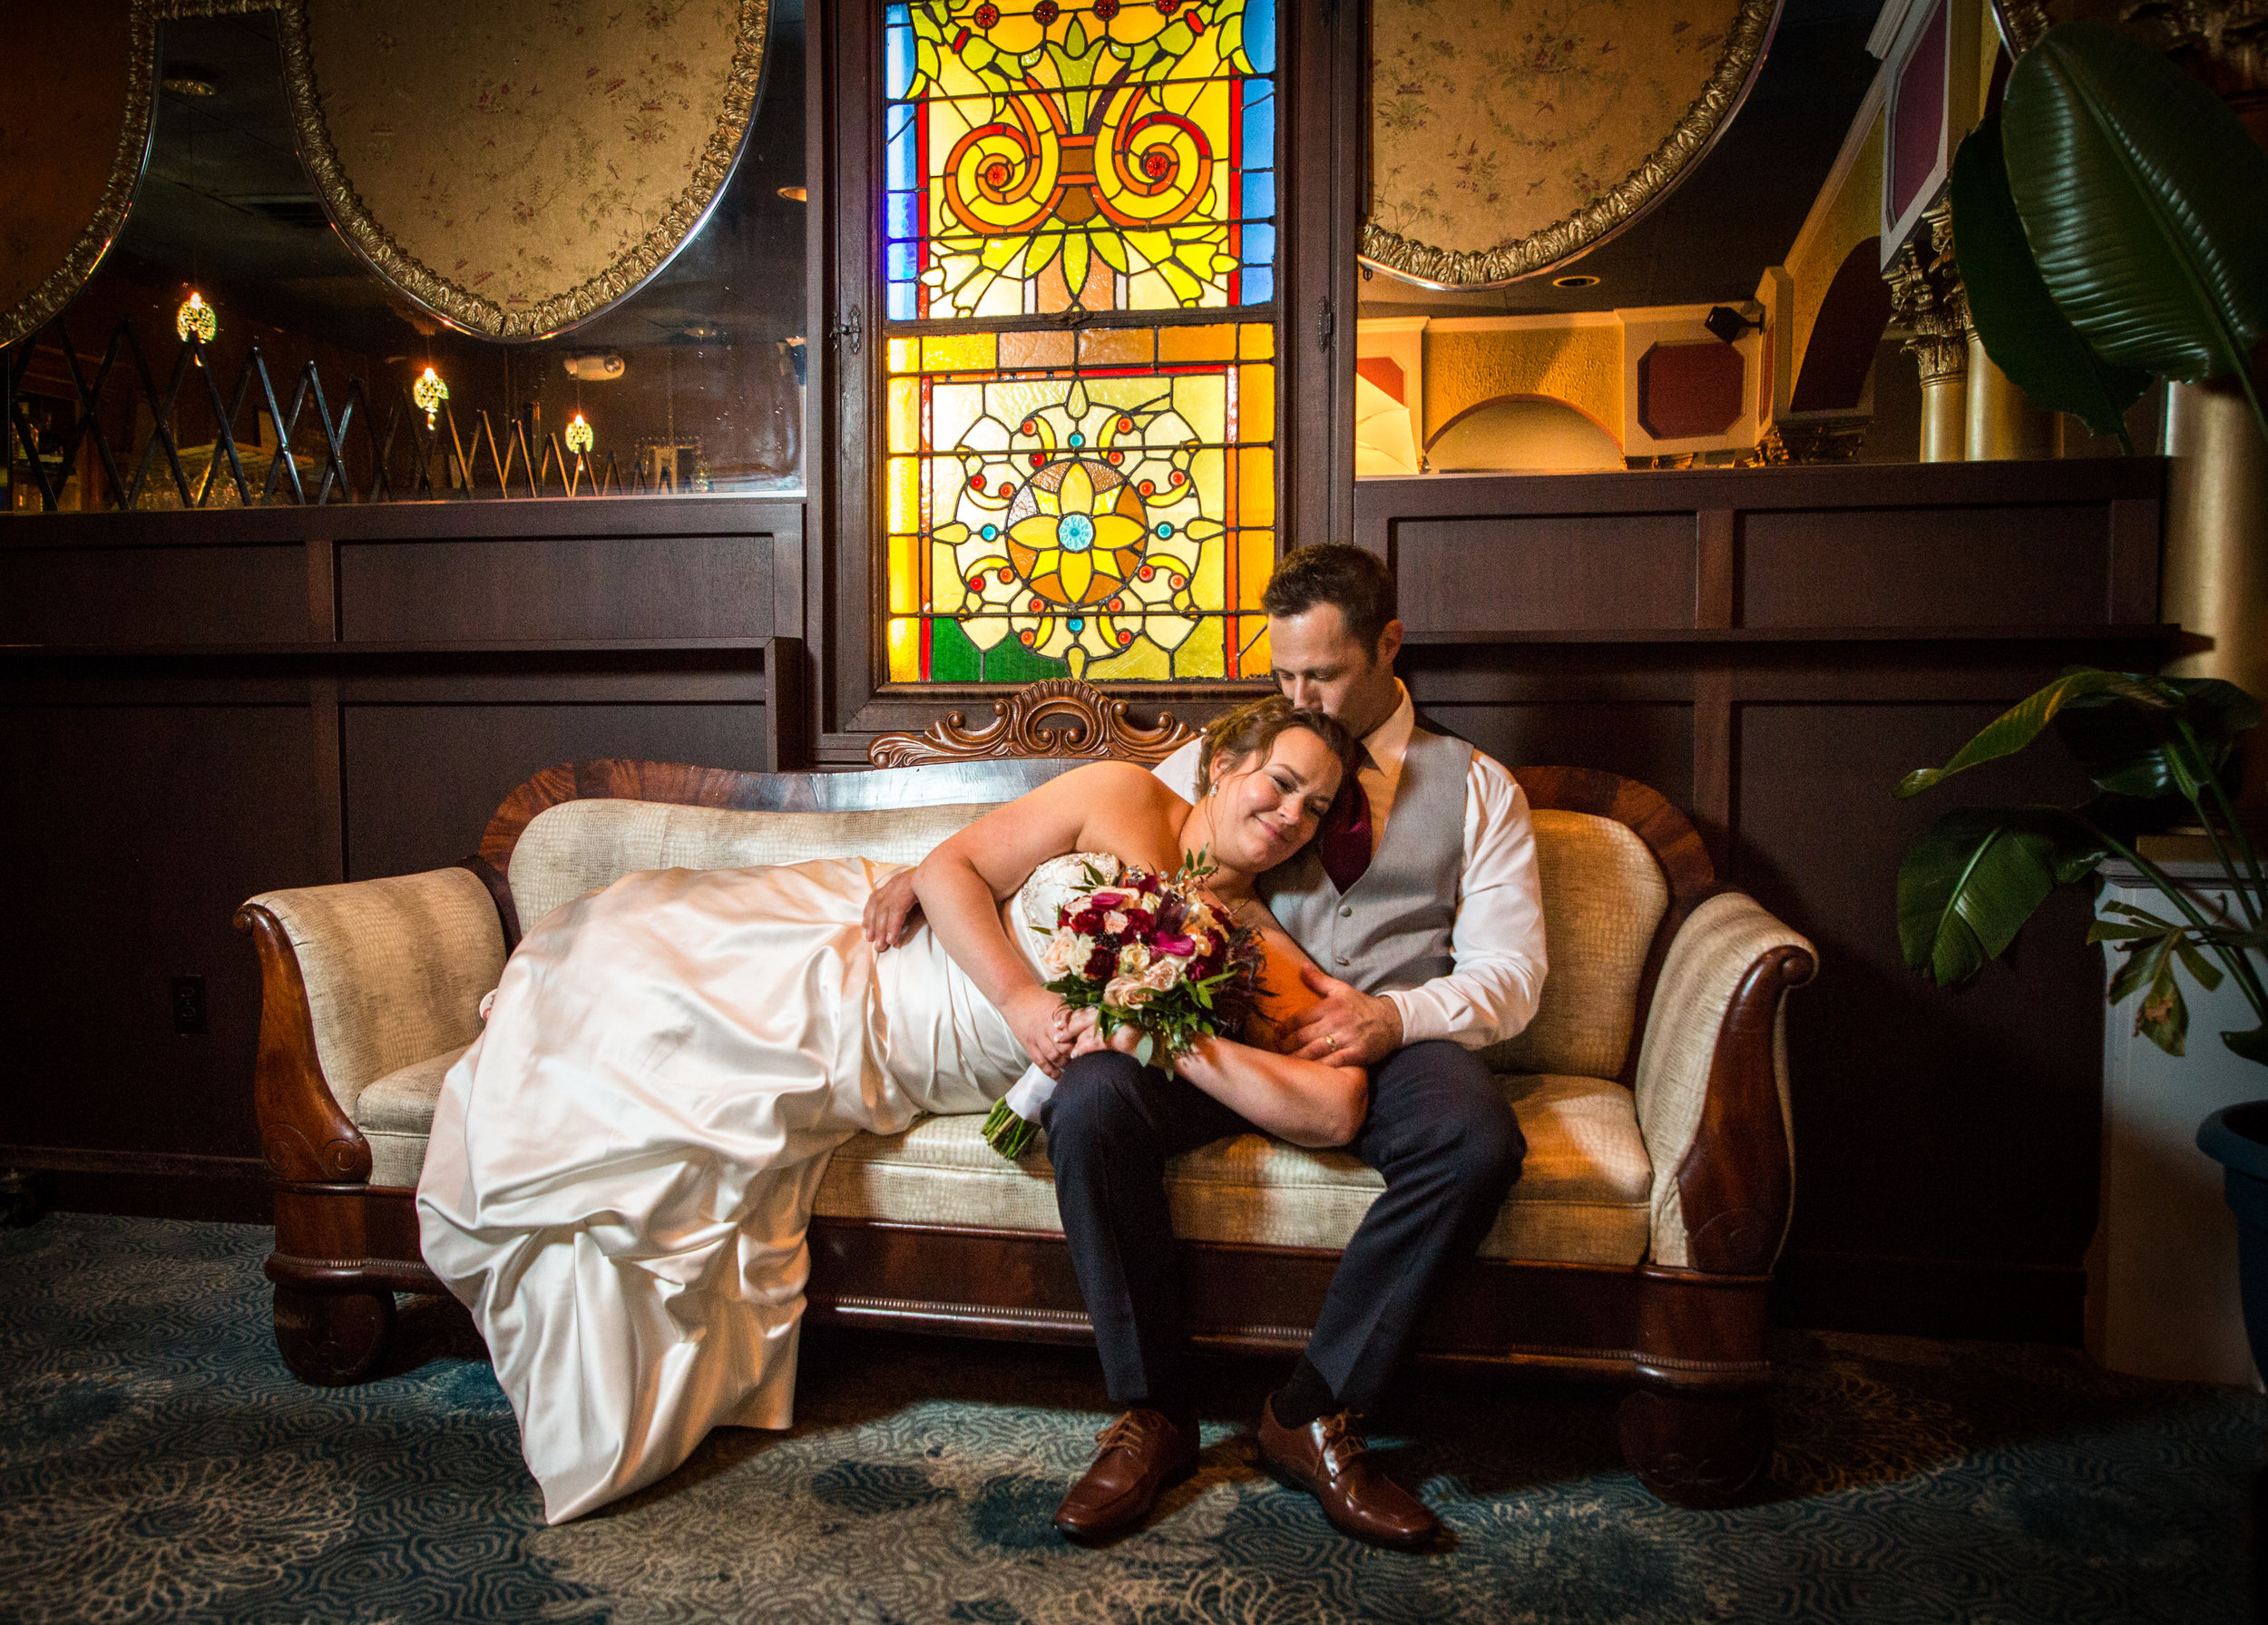 Husband and wife relax together on Victorian couch beneath a beautiful stained glass window in the historic Ocean 13 wedding venue.